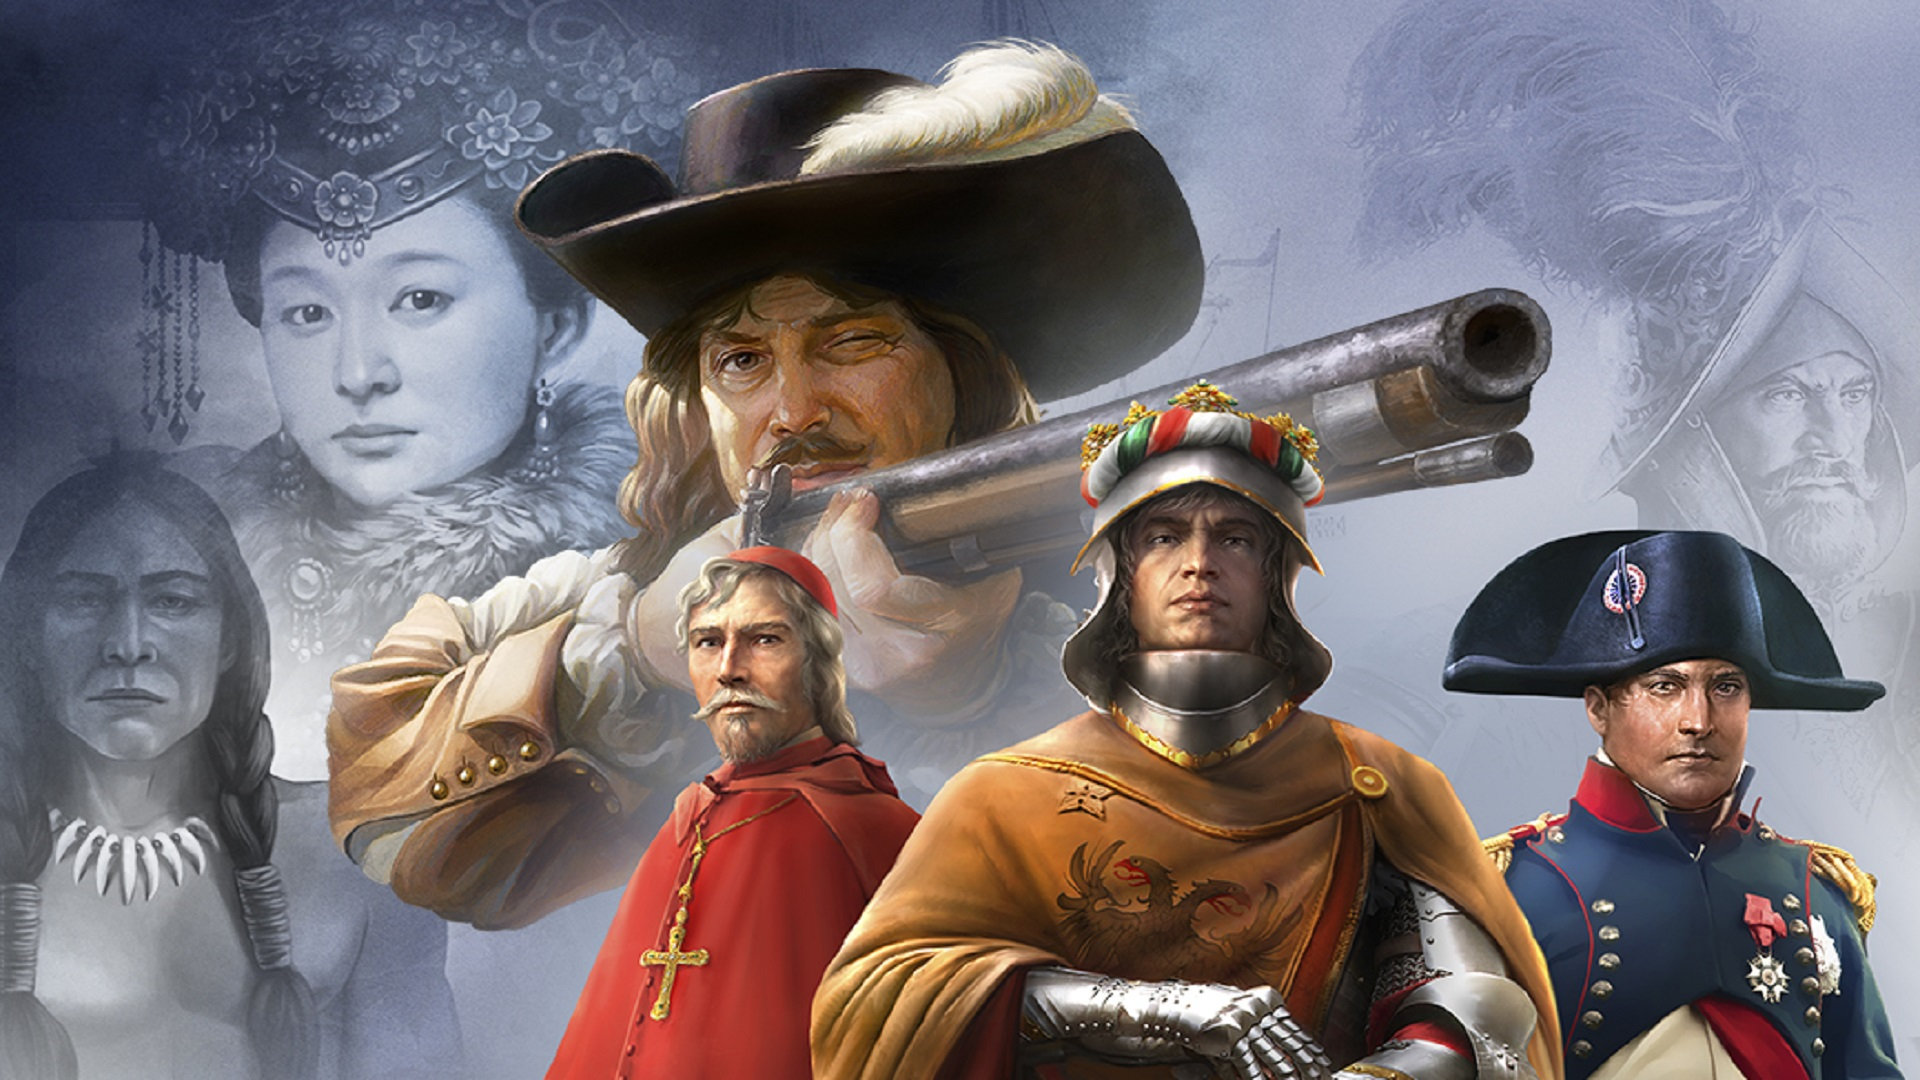 The EU4 subscription launches today, and the Nakama patch is making a comeback